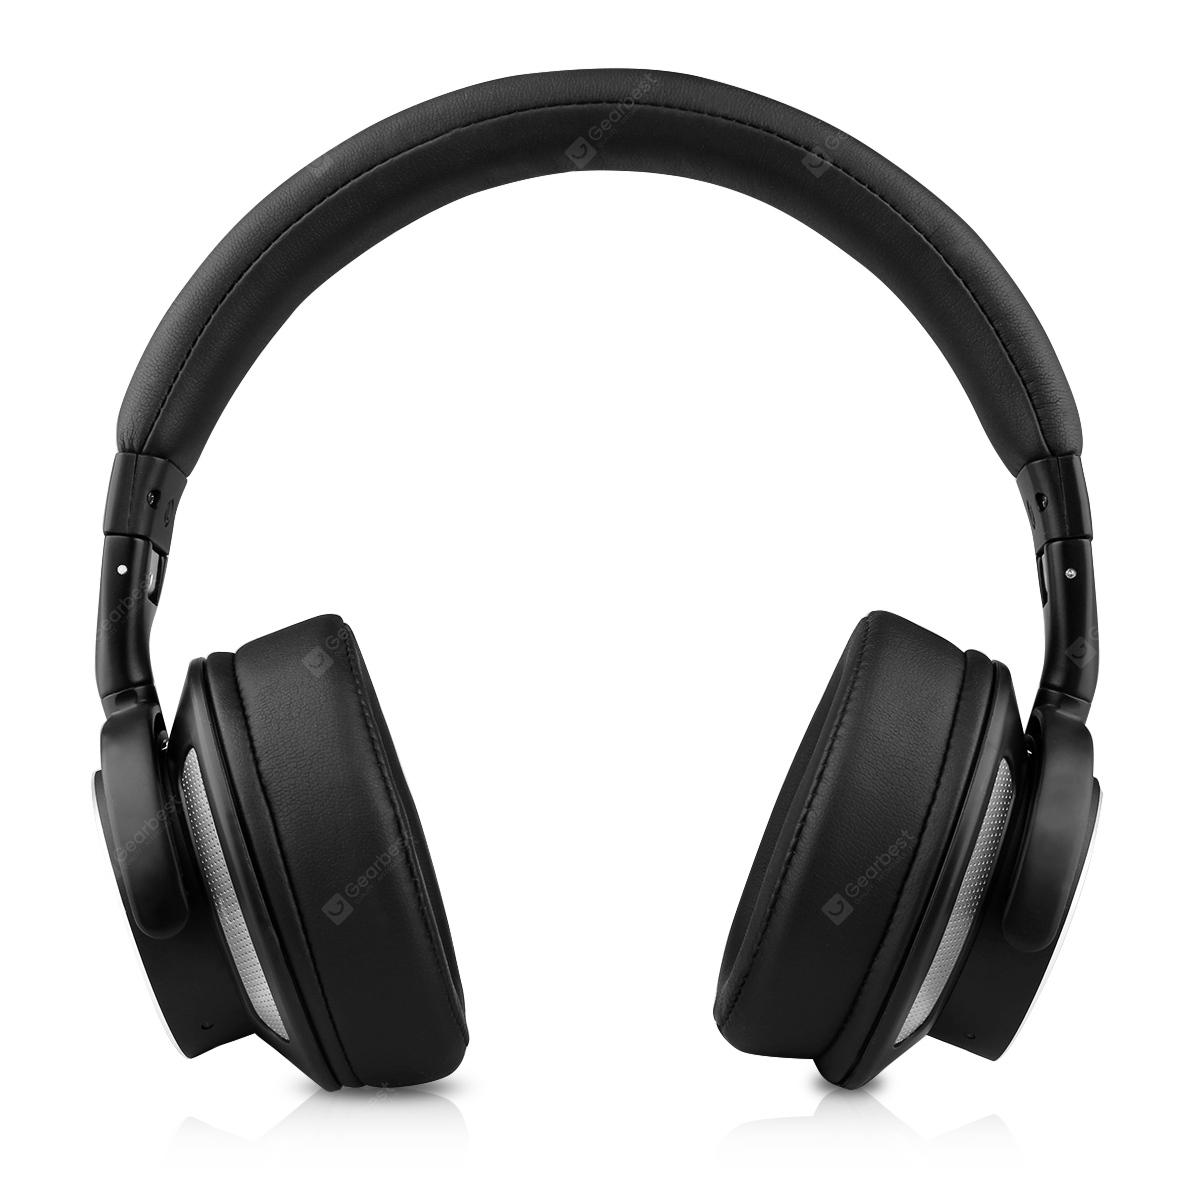 32e945411b0 Zinsoko Z - H01 Noise-canceling Bluetooth Headphone | Gearbest